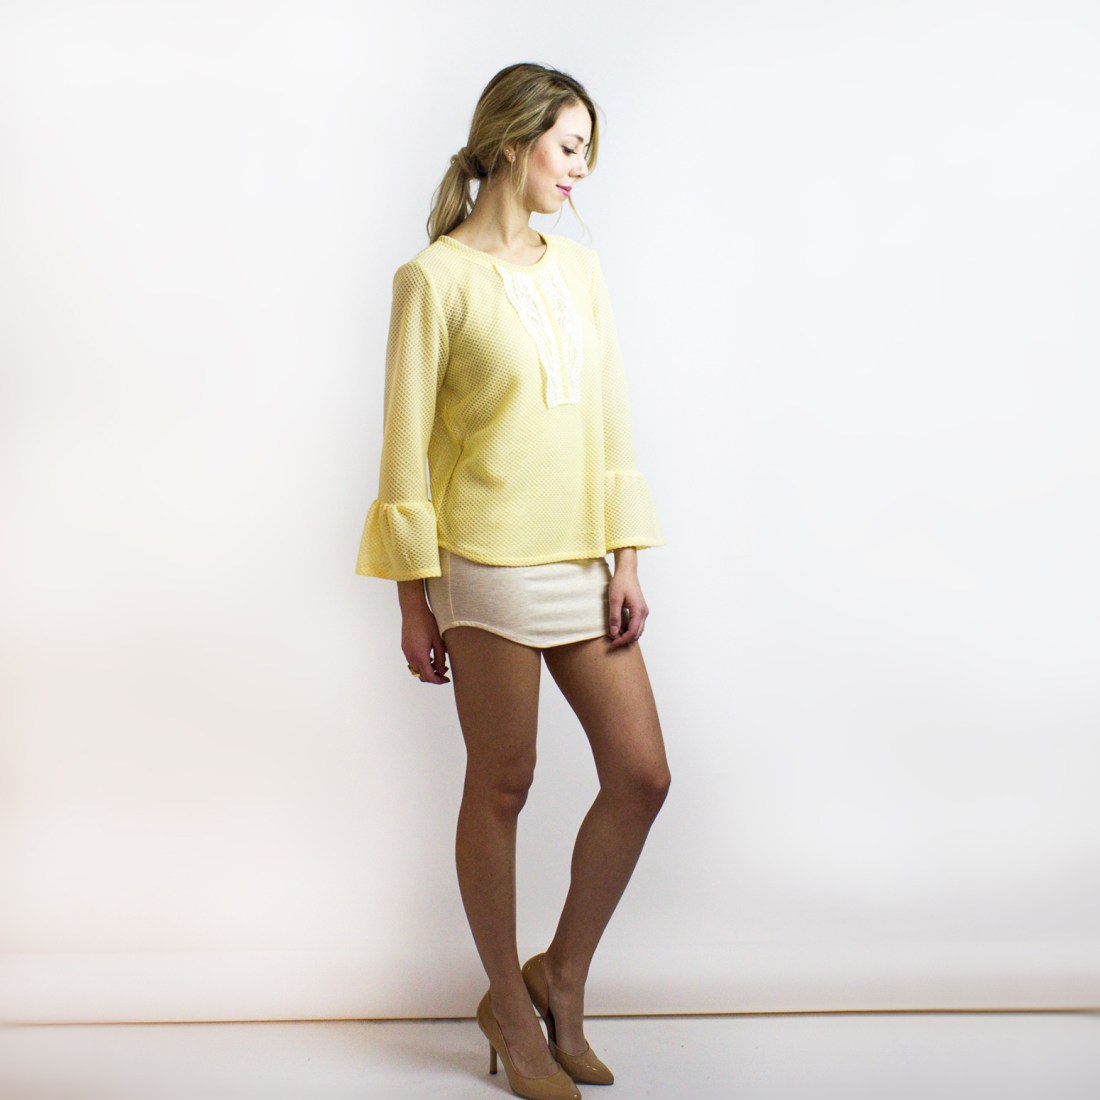 Tulip Soft Yellow Knit Top from Simone's Rose SS16 Collection | eco-conscious and sustainable women's fashion label made in downtown Toronto